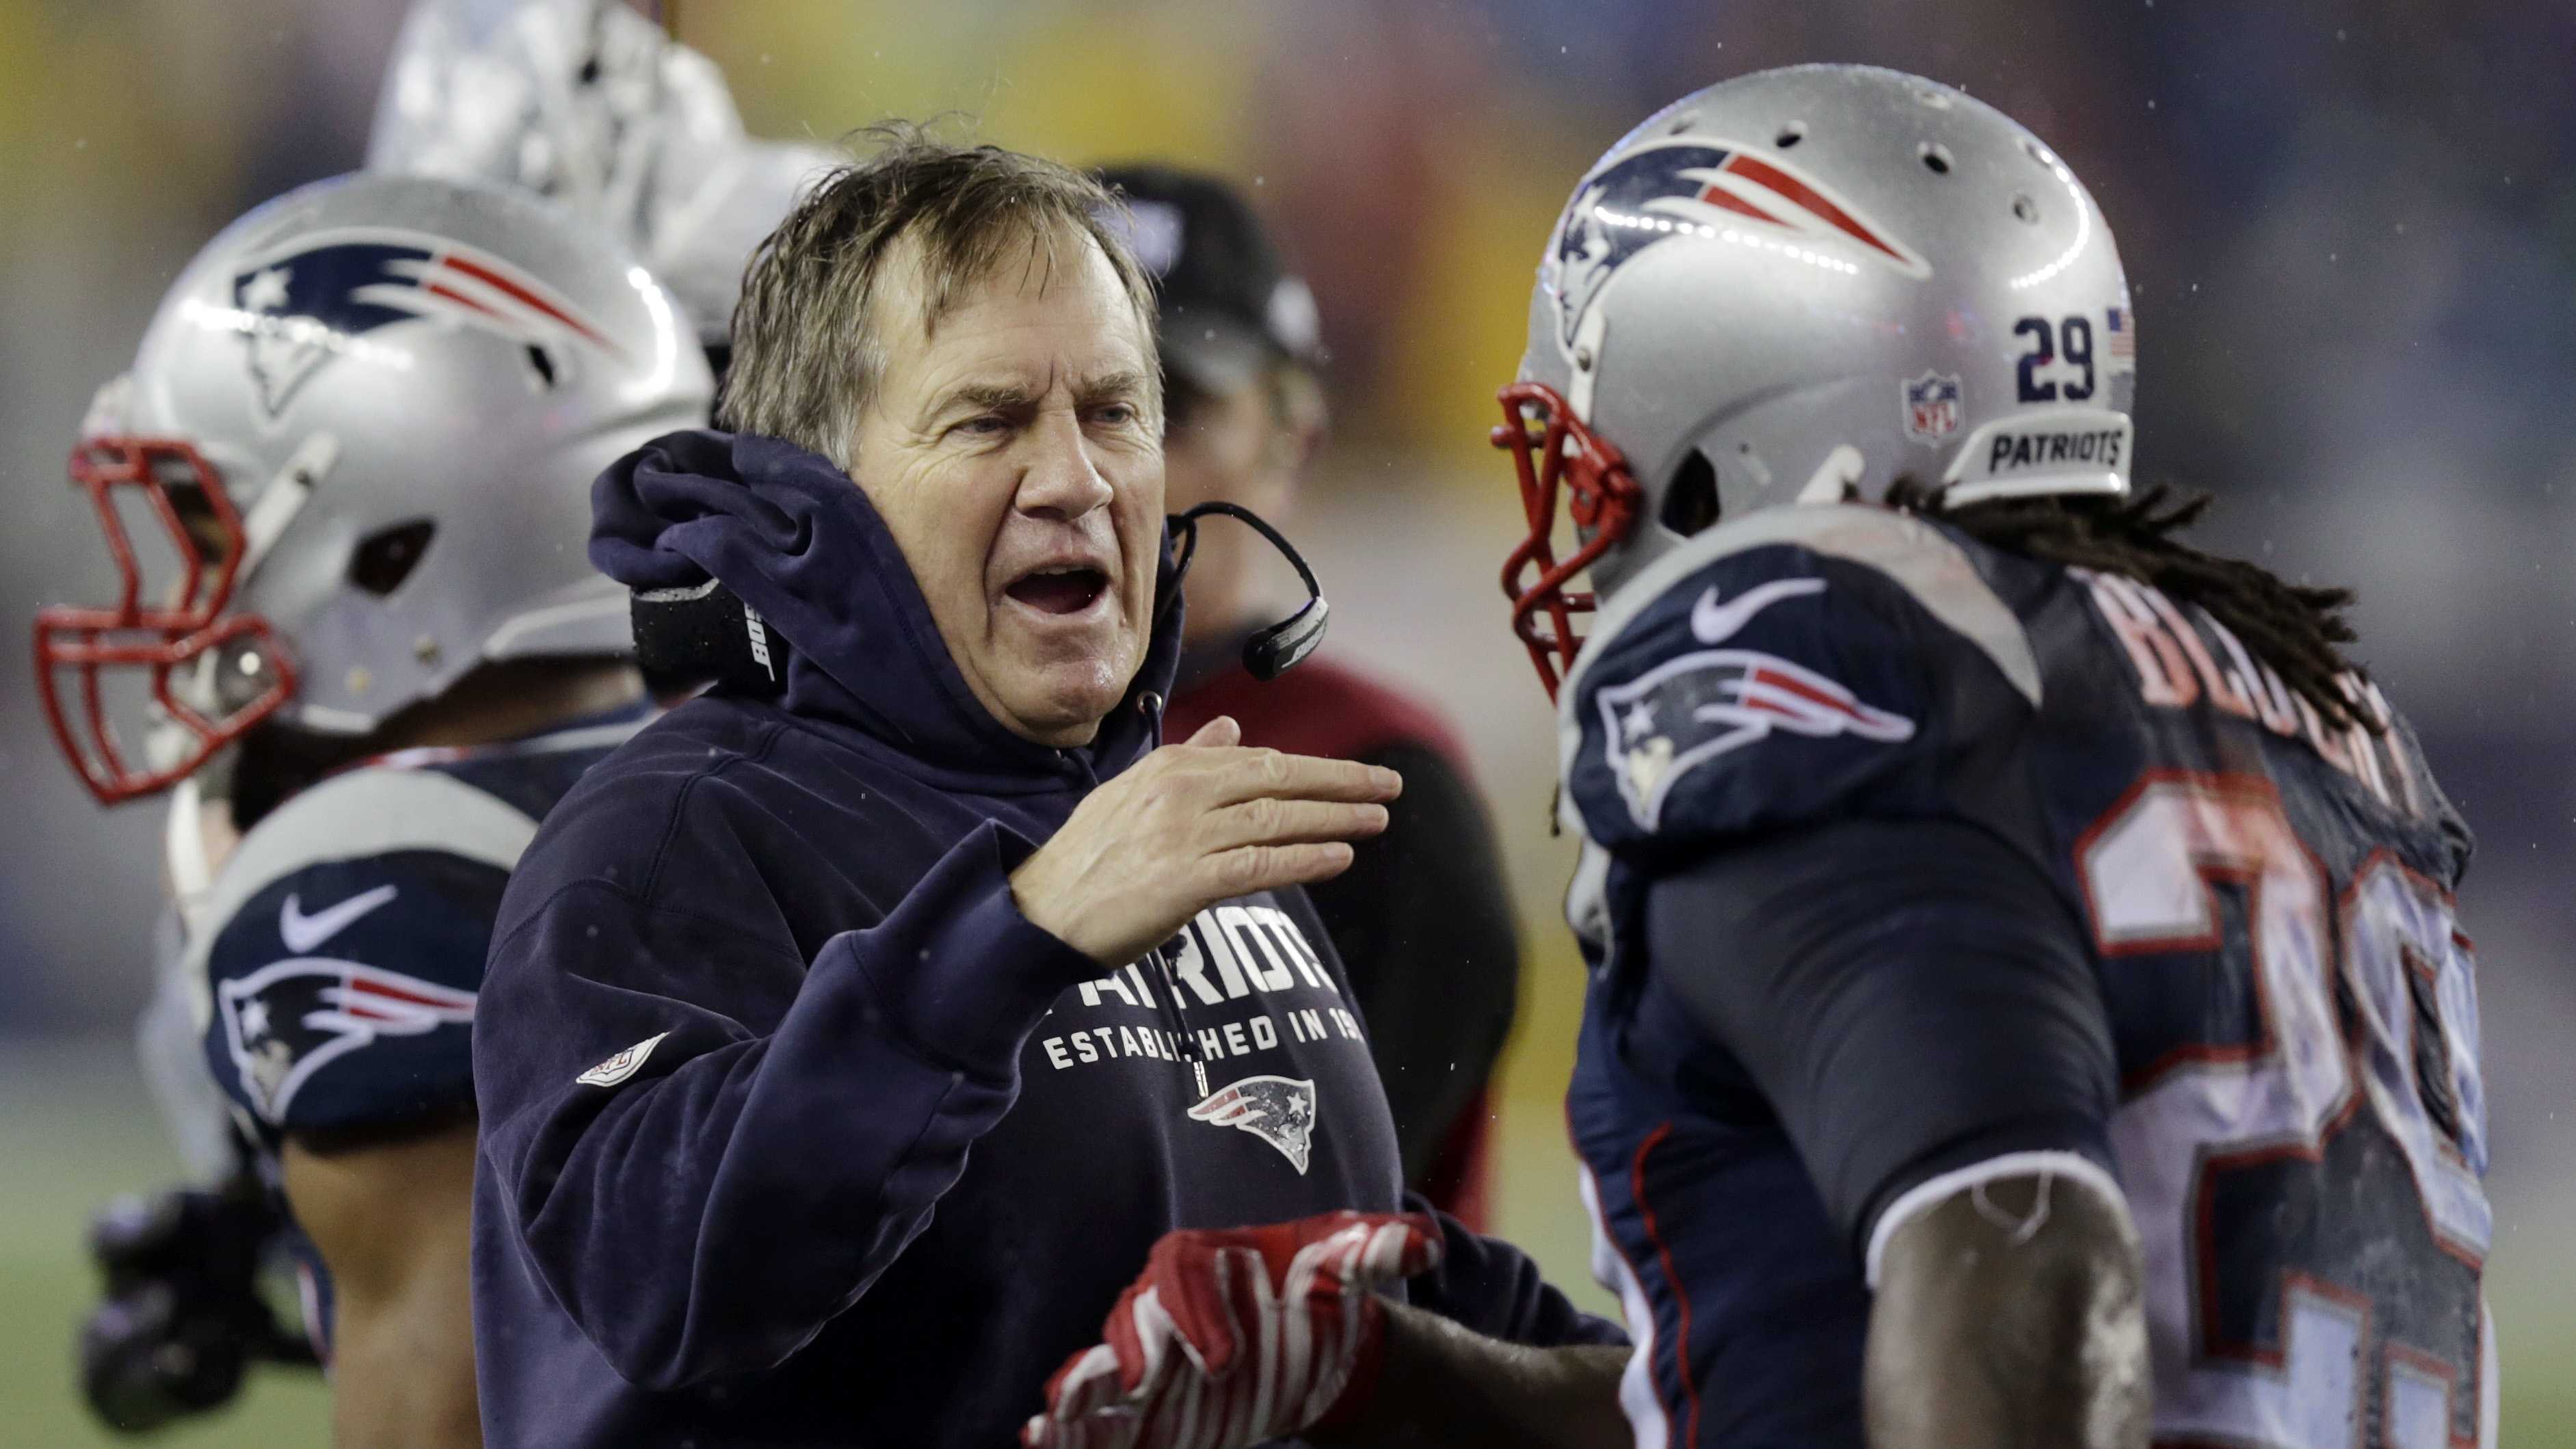 New England Patriots head coach Bill Belichick congratulates LeGarrette Blount after his touchdown during the second half of the NFL football AFC Championship game against the Indianapolis Colts Sunday, Jan. 18, 2015, in Foxborough, Mass.